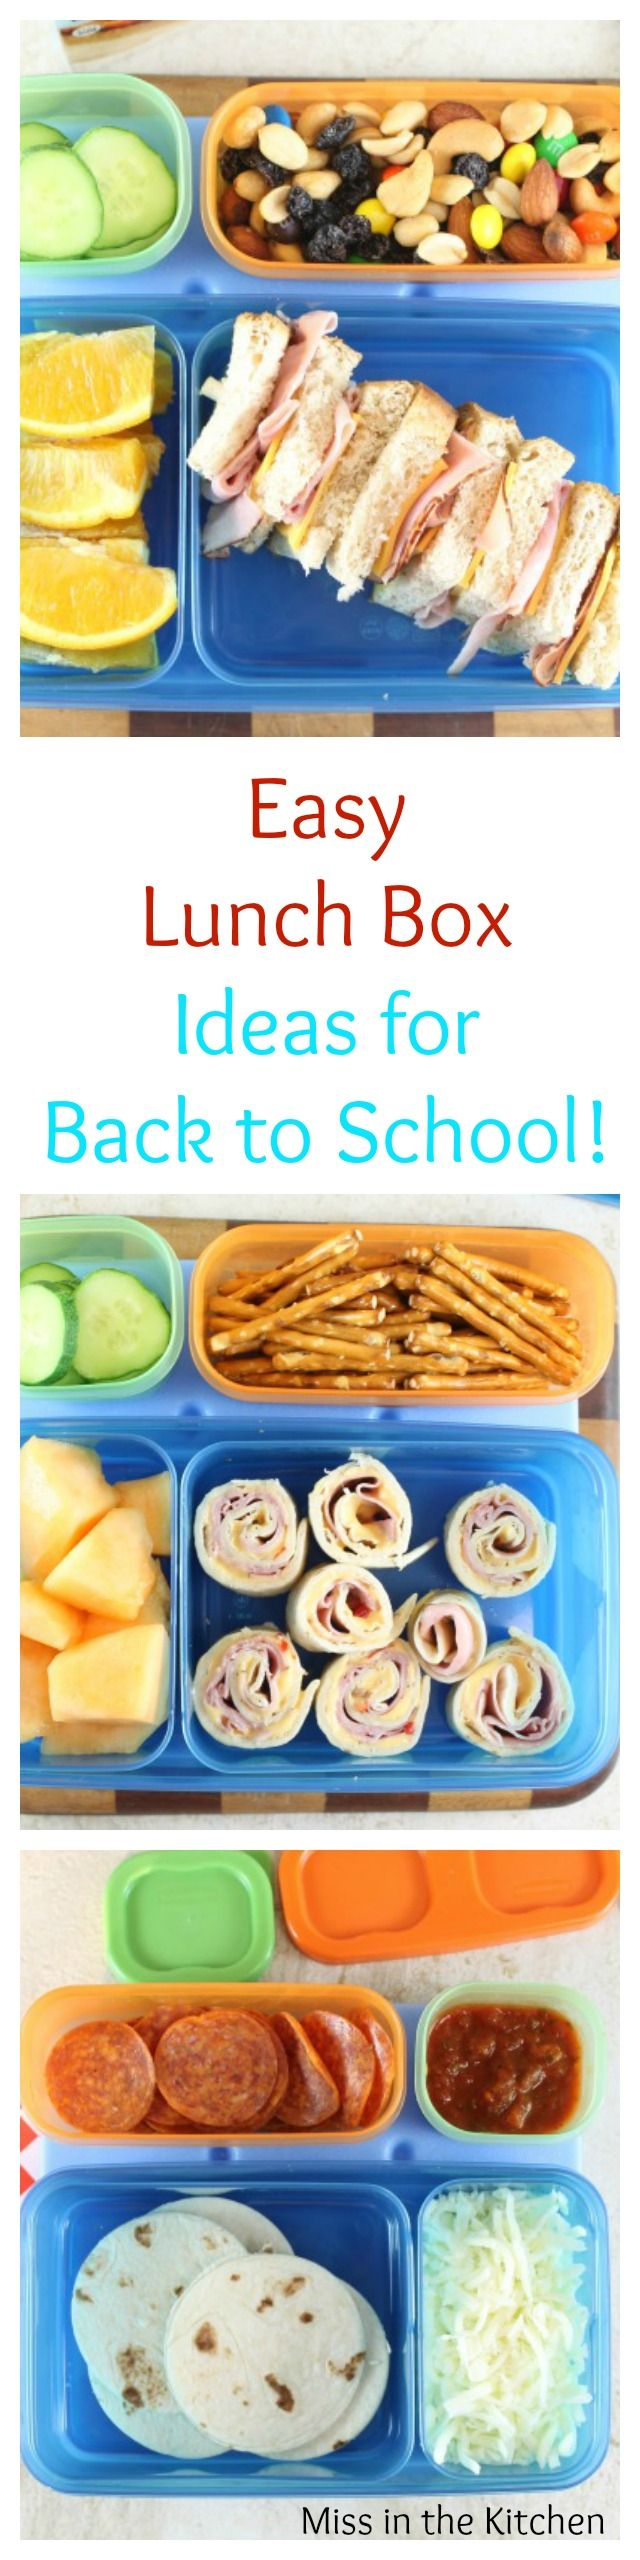 Easy Lunch Box Ideas with Rubbermaid LunchBlox Ideas ~ from MissintheKitchen.com #ad